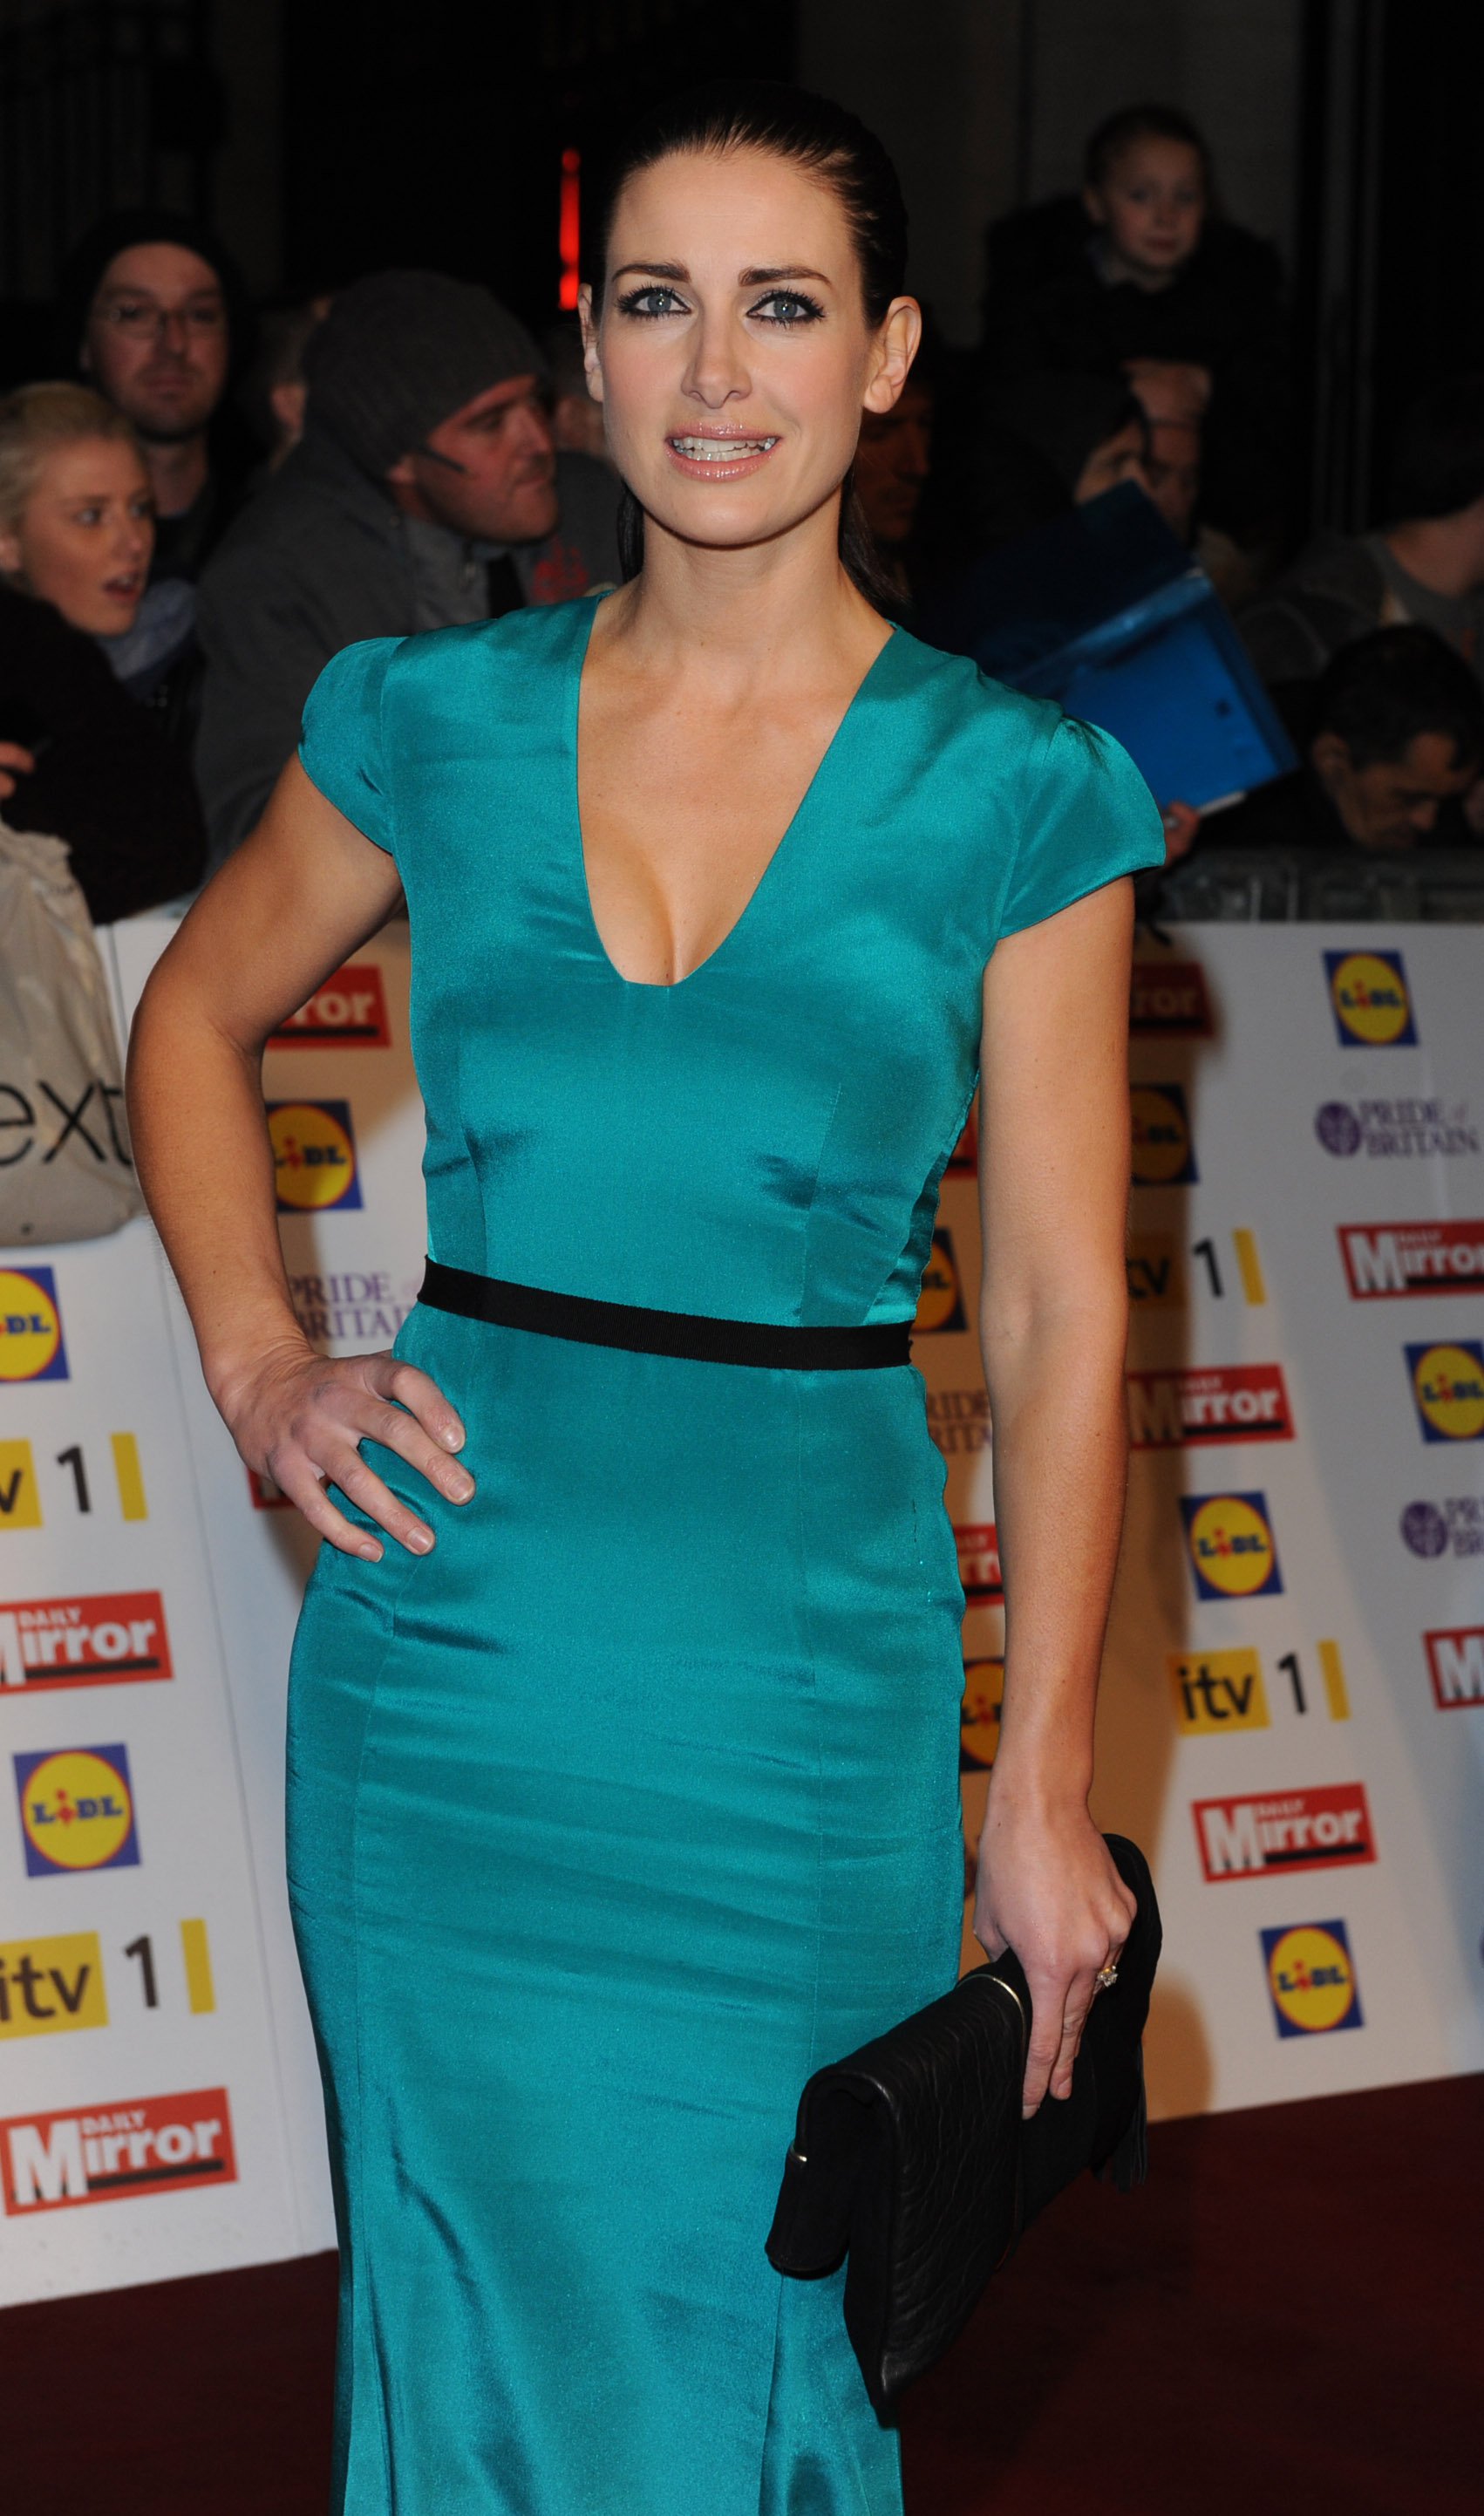 Kirsty Gallacher 2012 : Kirsty Gallacher cleavage-14